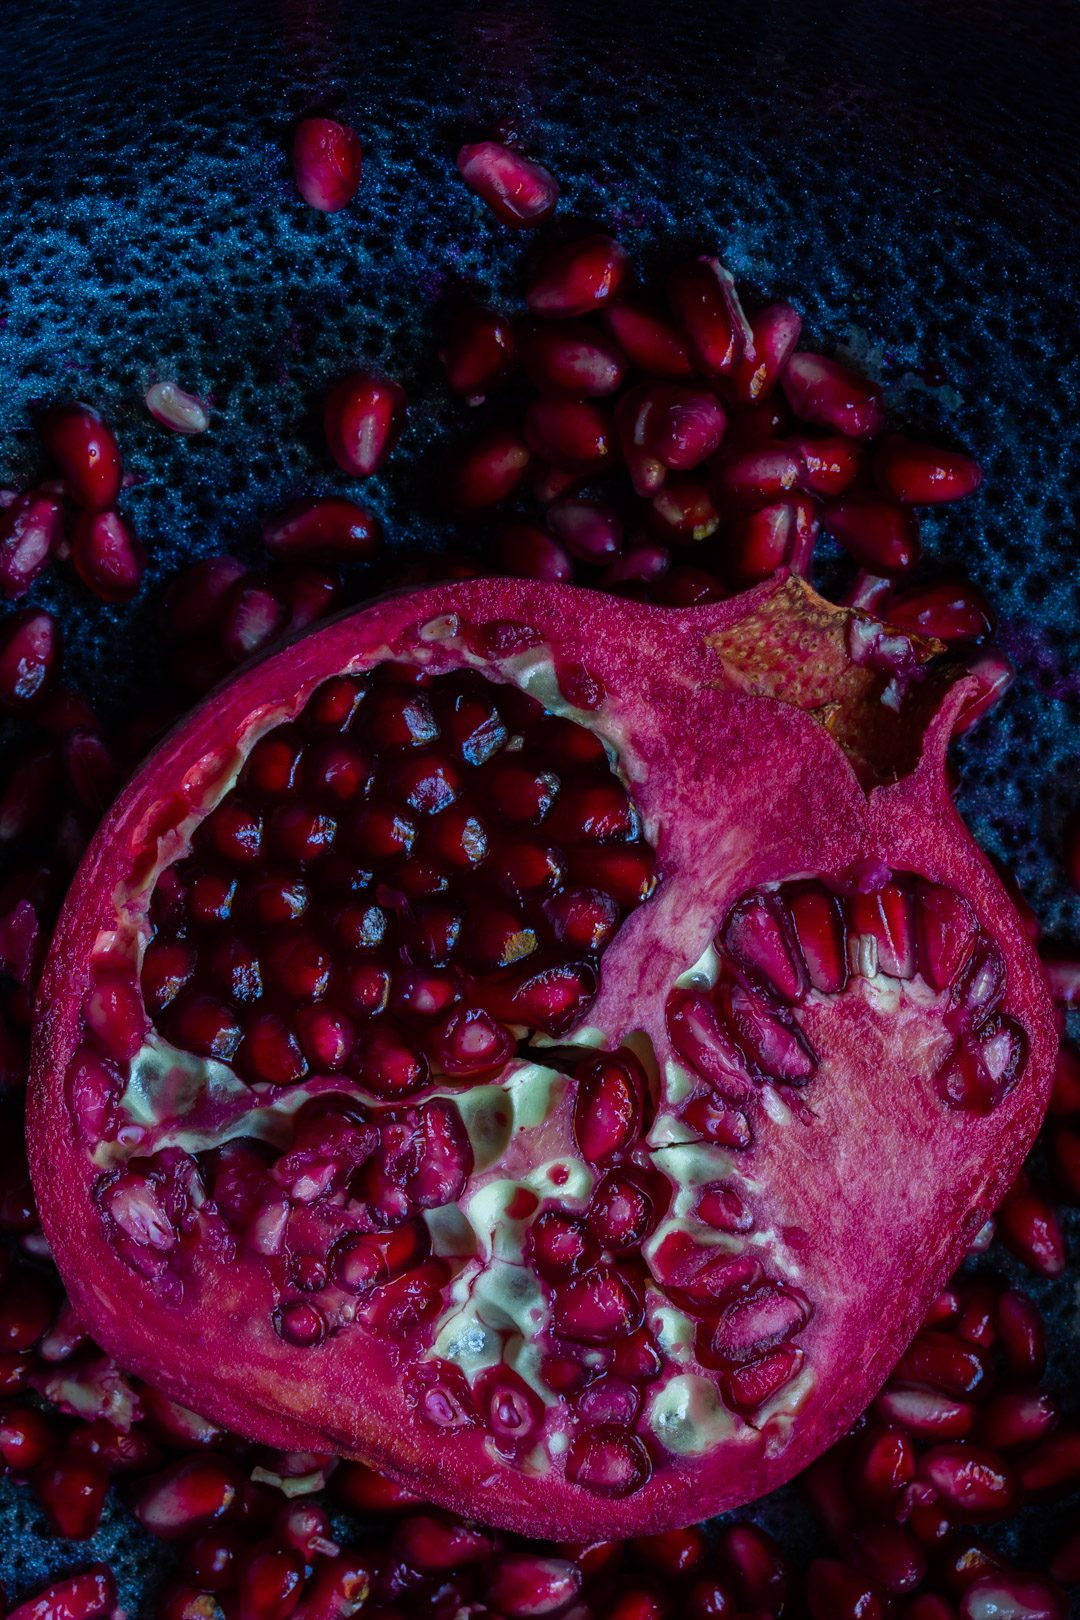 pomegranate split open on black textured background from above used to make grenadine